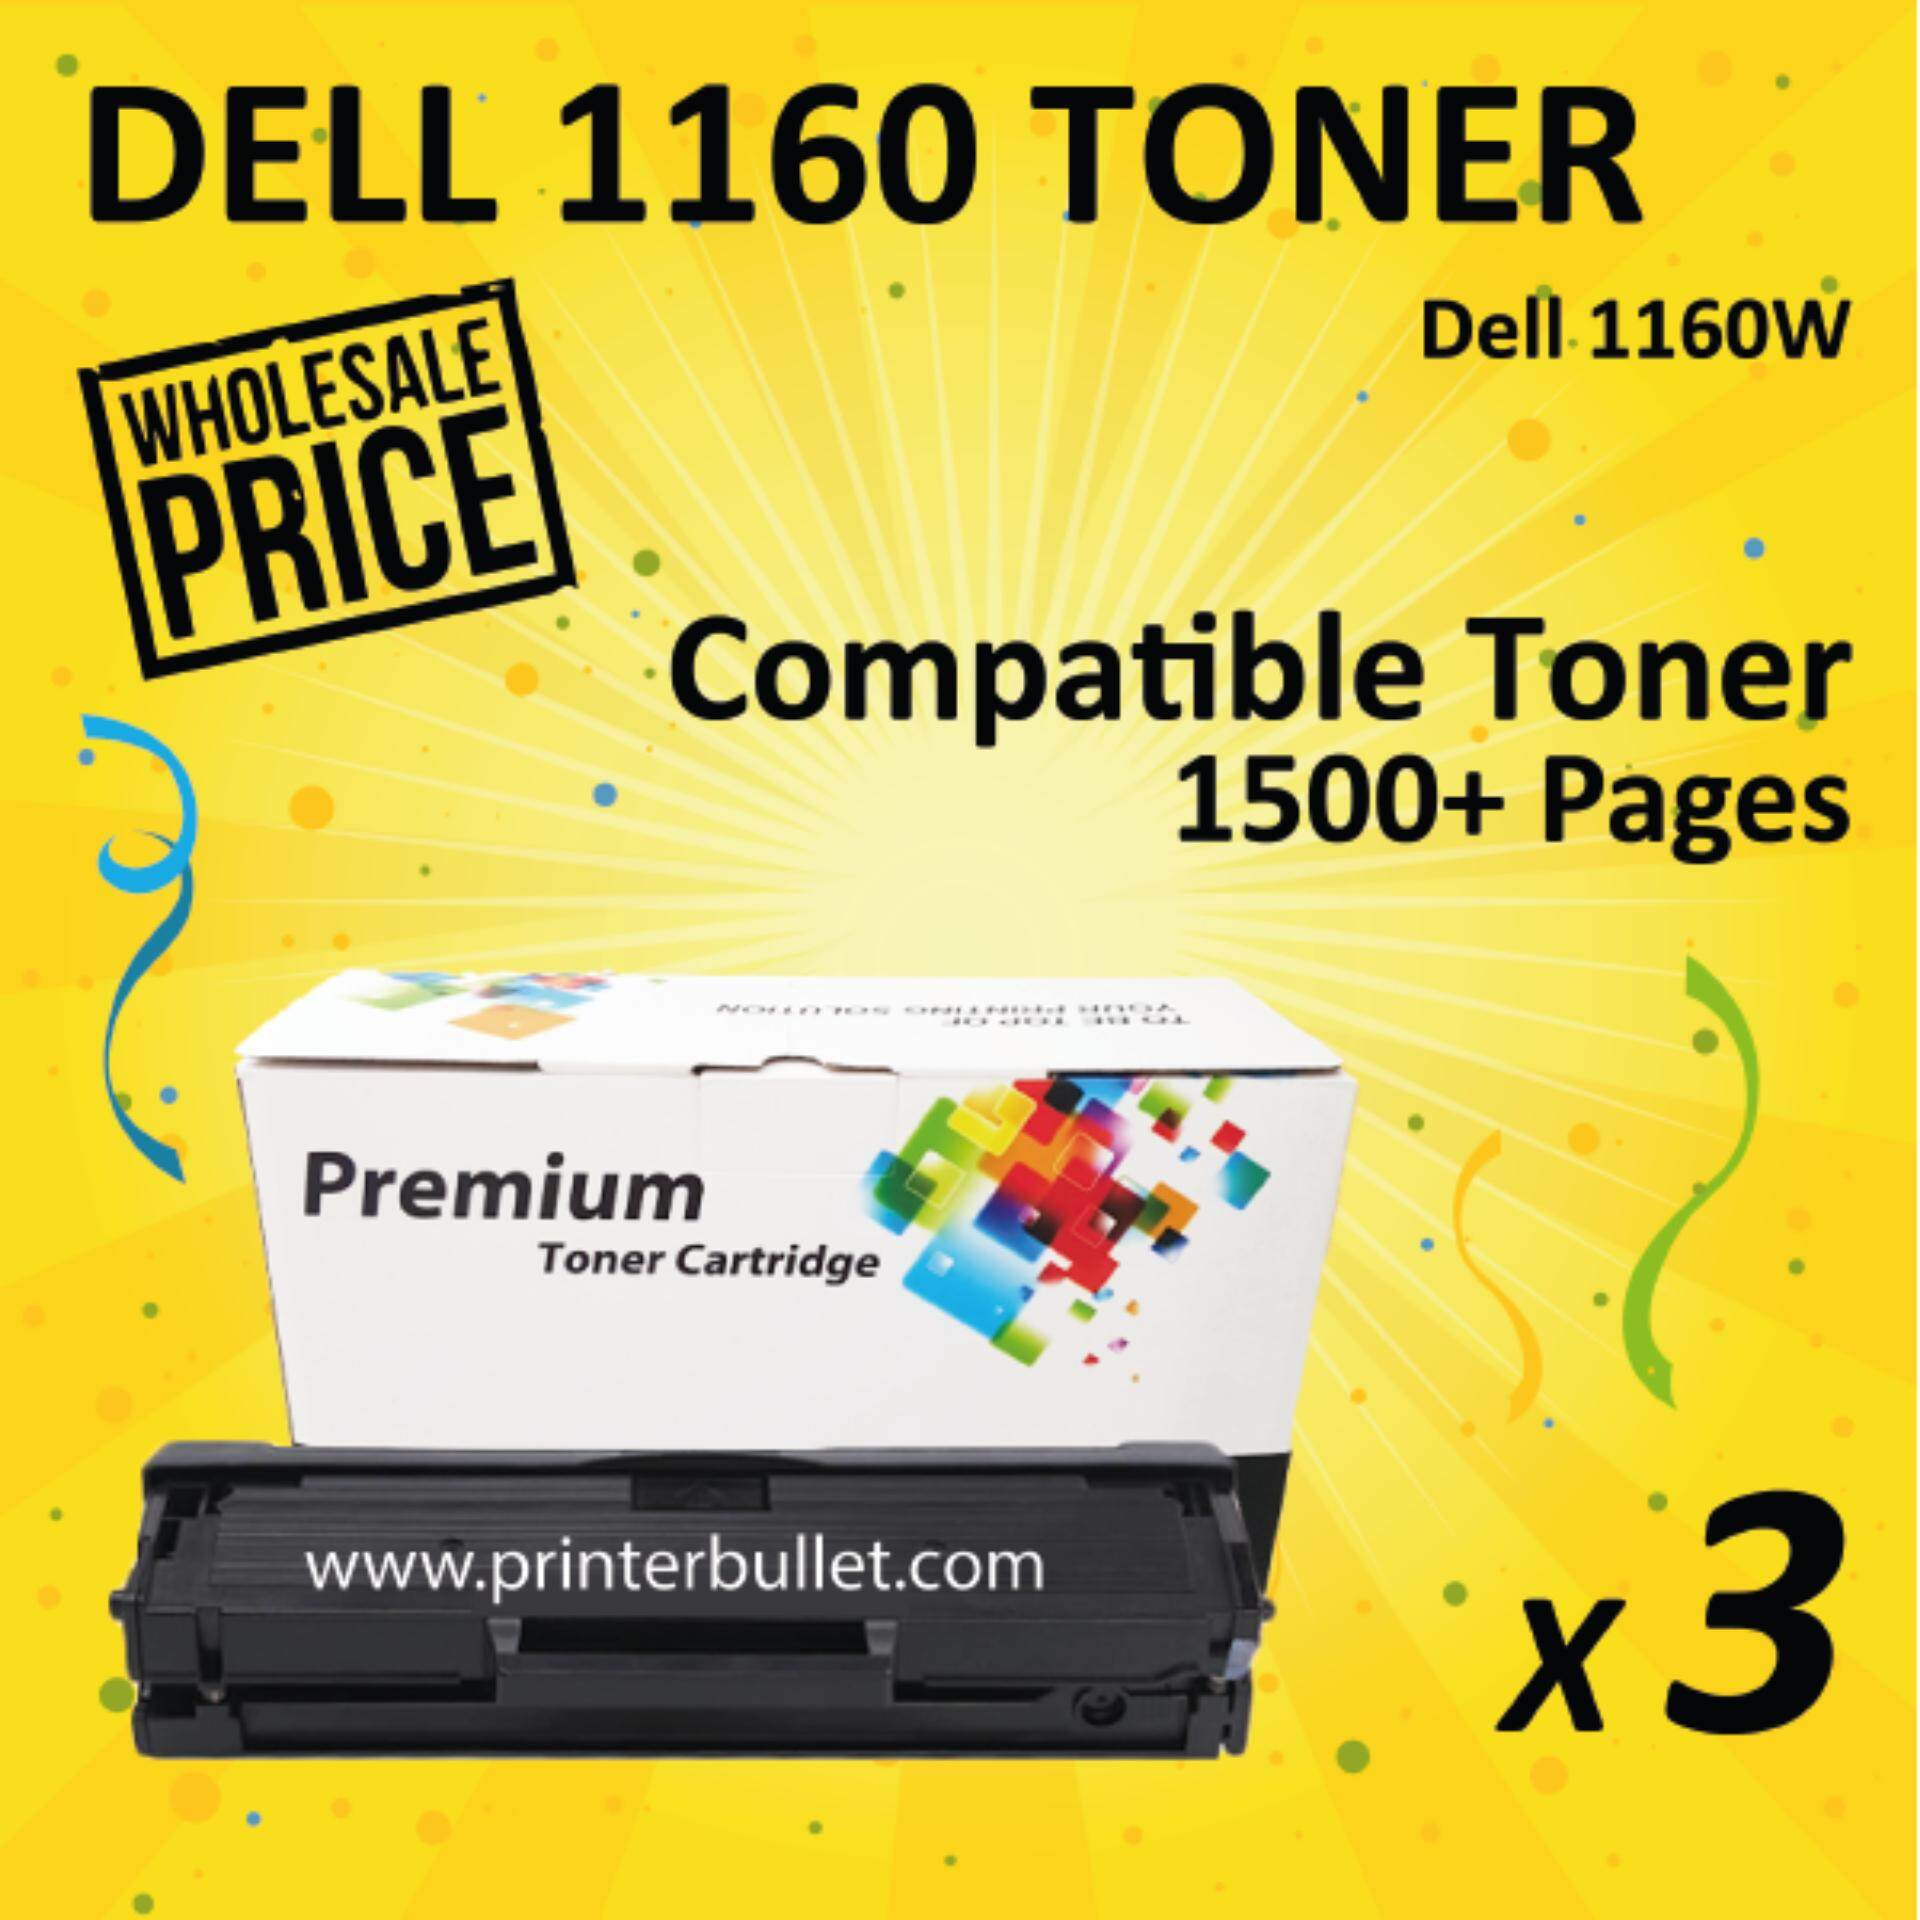 3 unit Dell B1160 / B1160w / B1163 / B1163w / B1165 / B1165nfw Compatible Laser Toner Cartridge